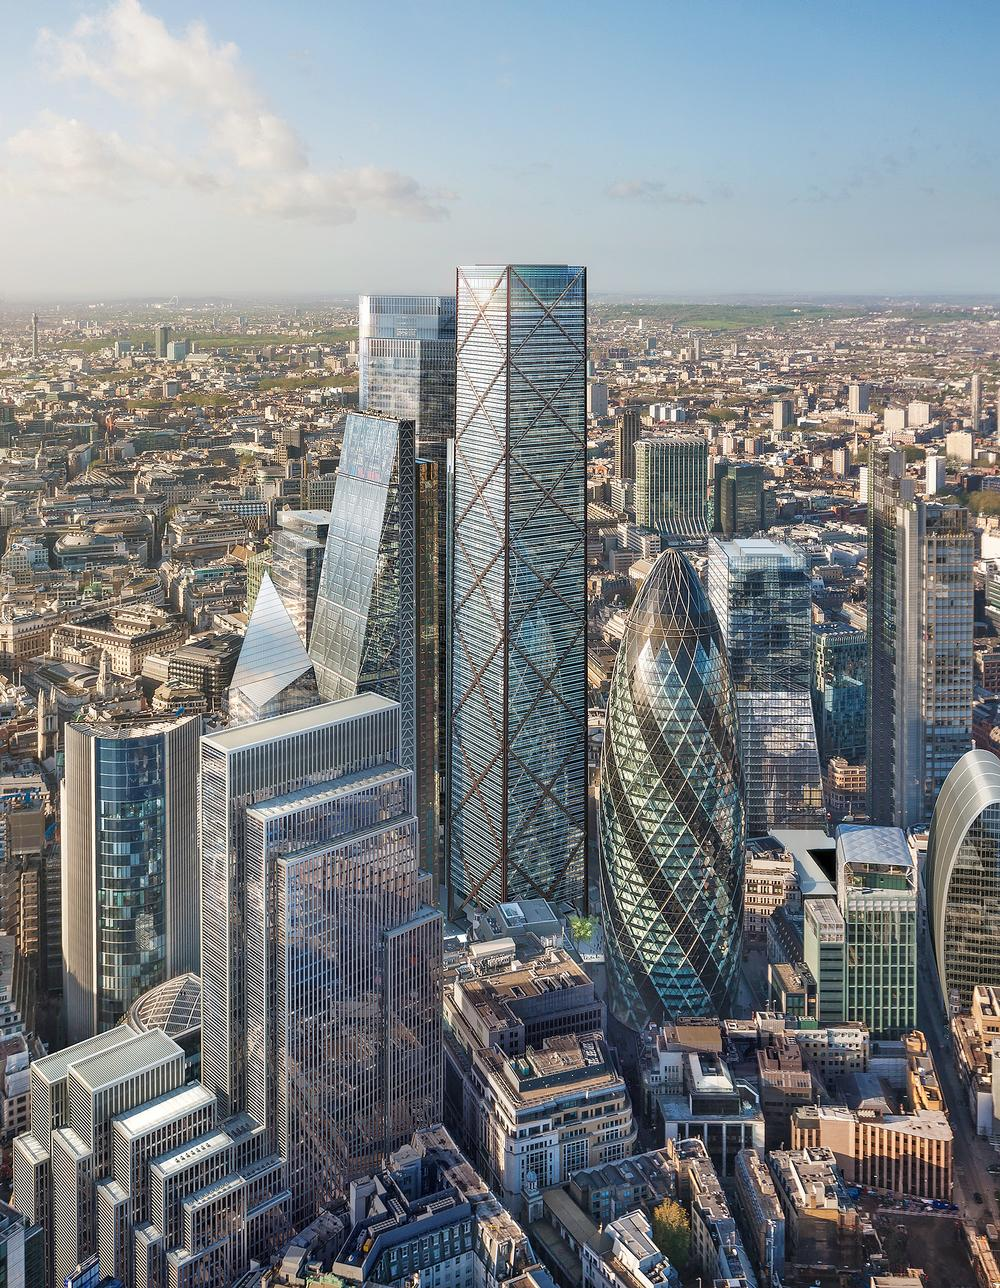 Eric Parry Architects has designed a new London skyscraper, but it's not easy to build tall in the capital / PHOTO: DBOX for Eric Parry Architects